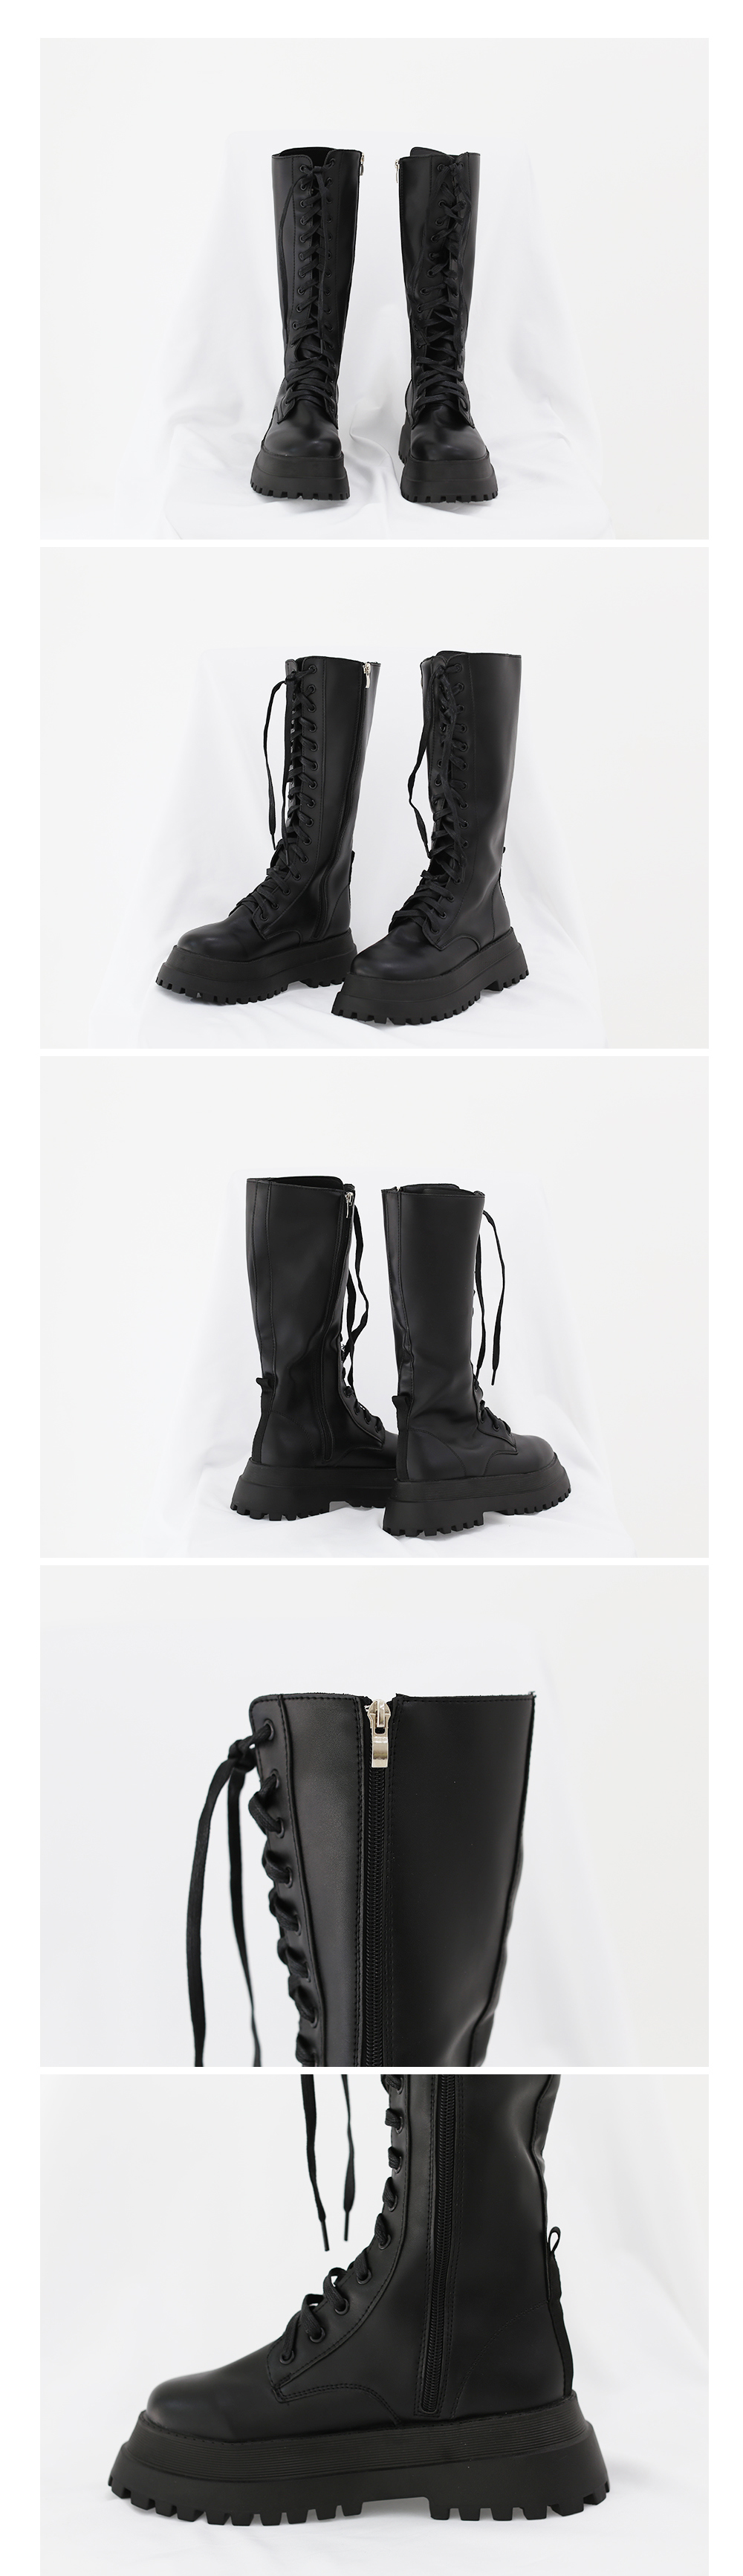 Barbe middle walker boots